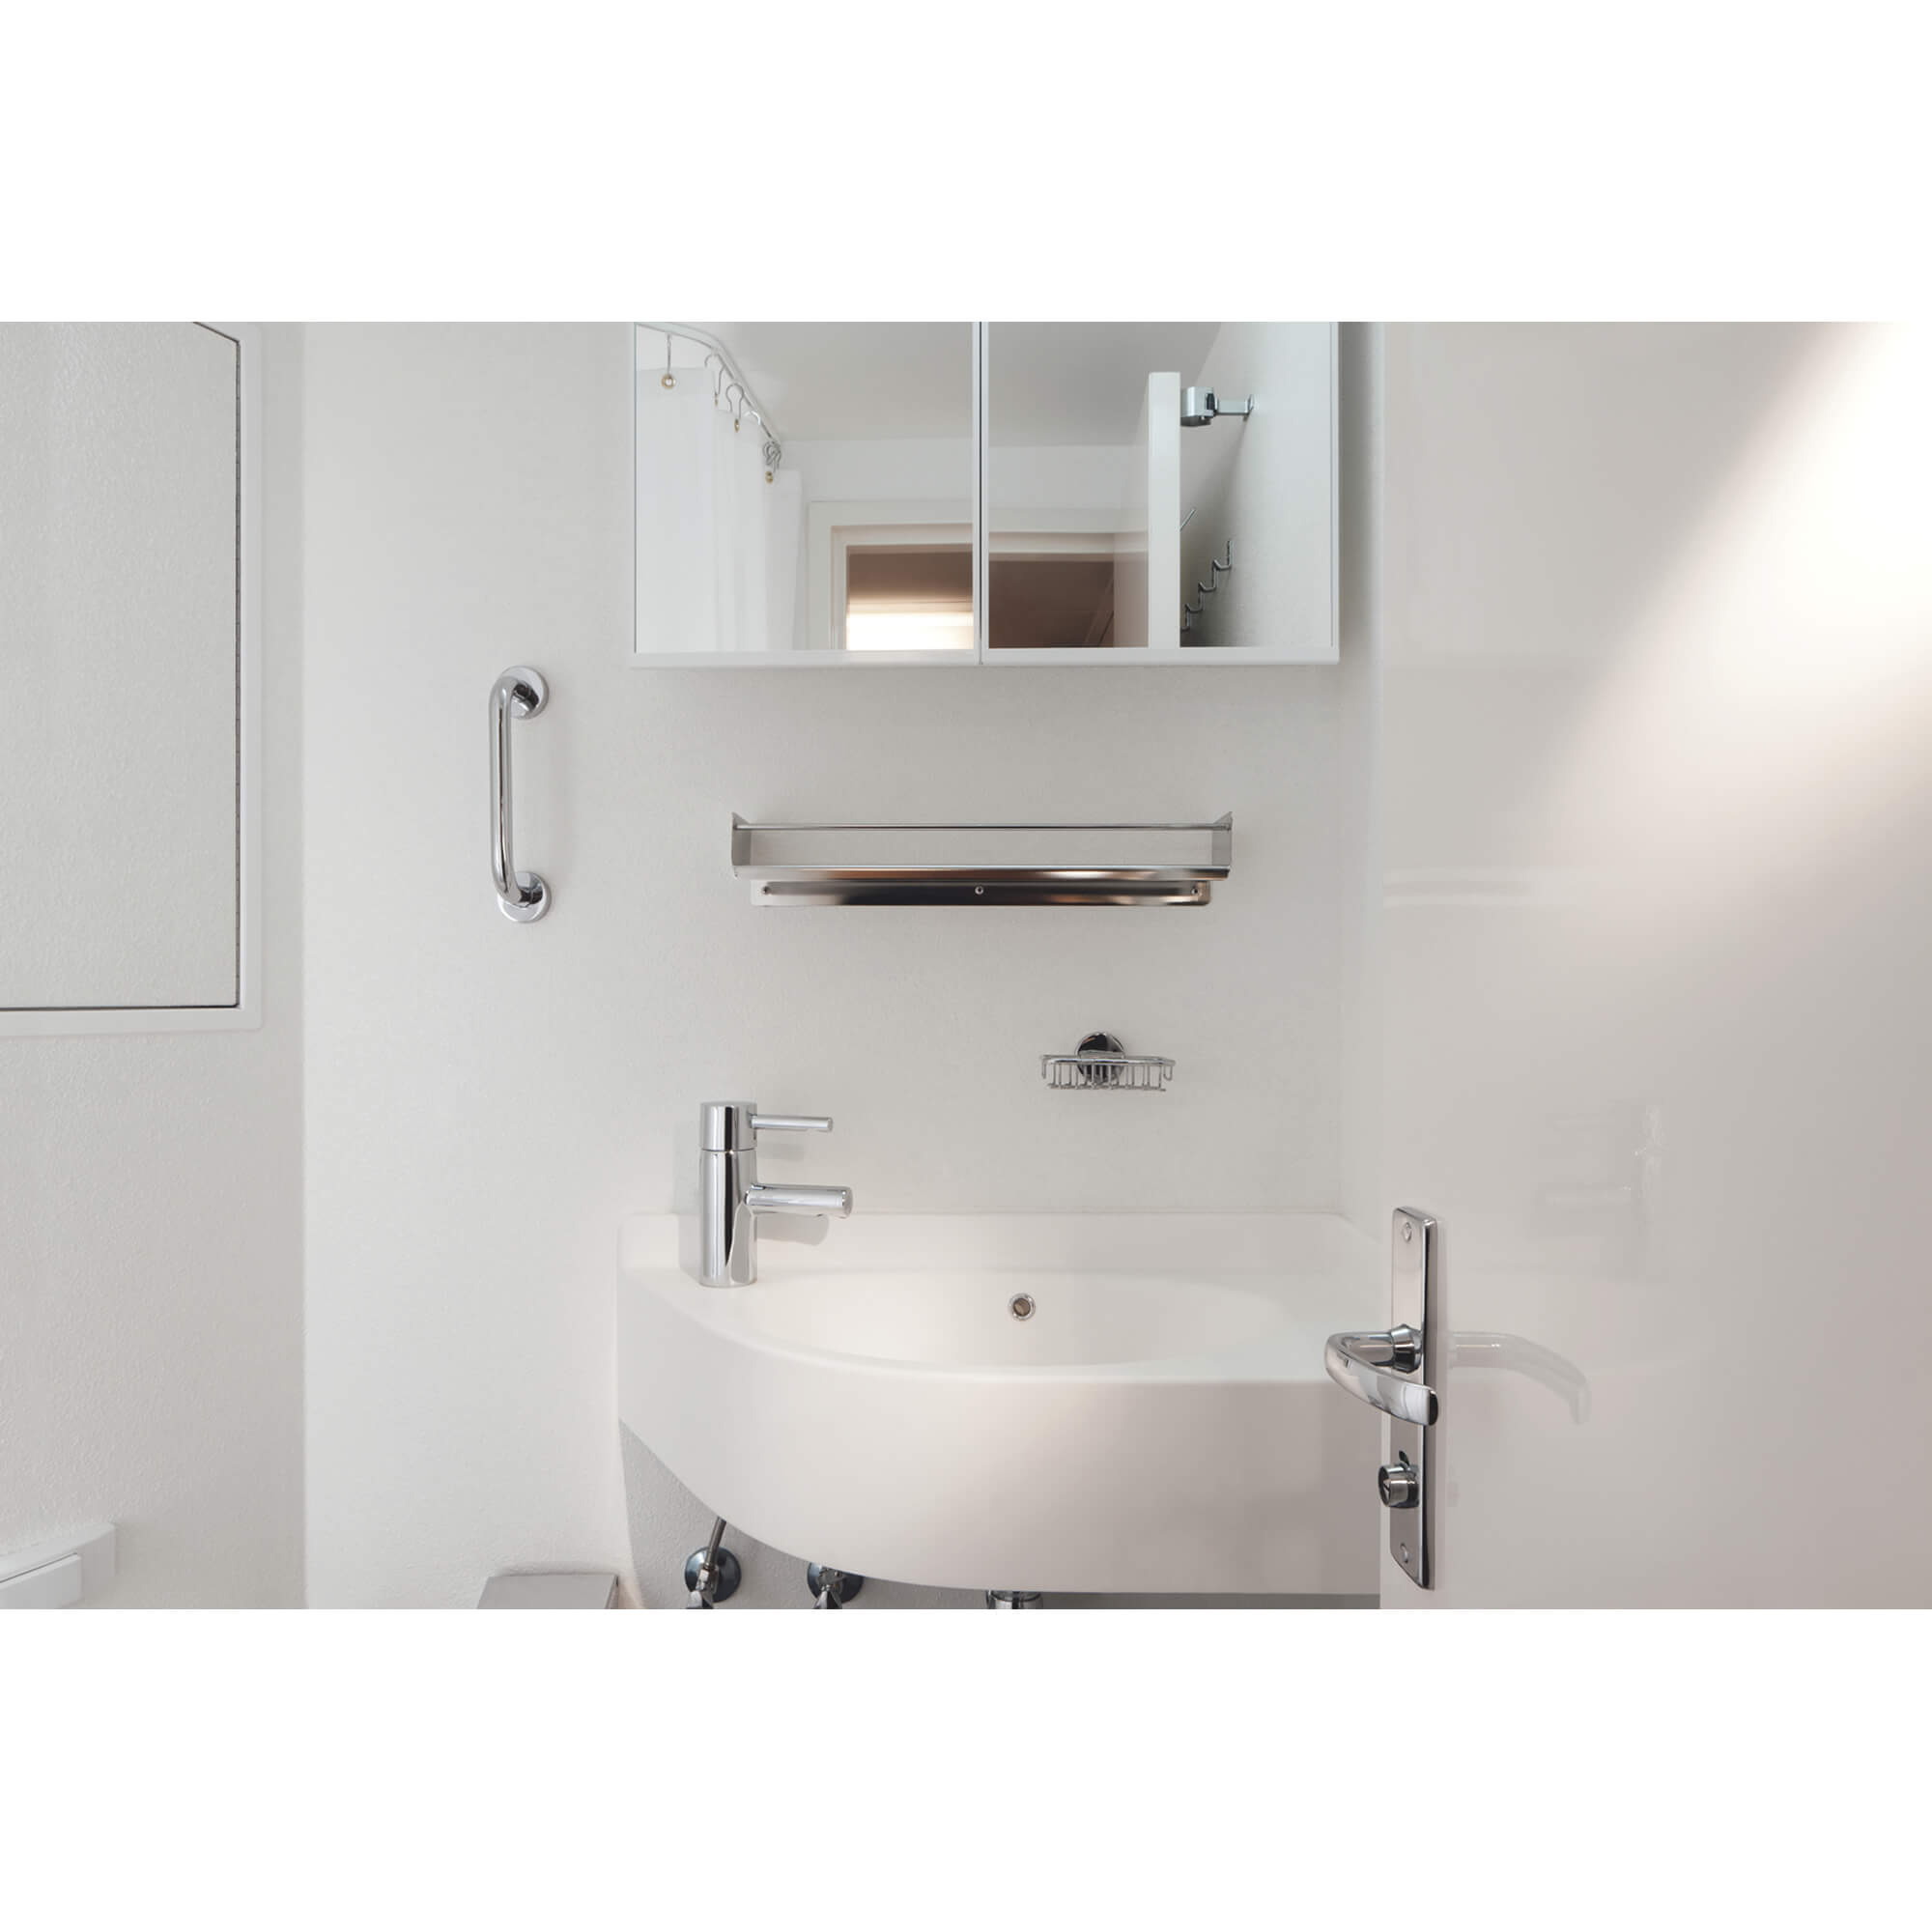 Essentials Bath Grip GROHE CHROME